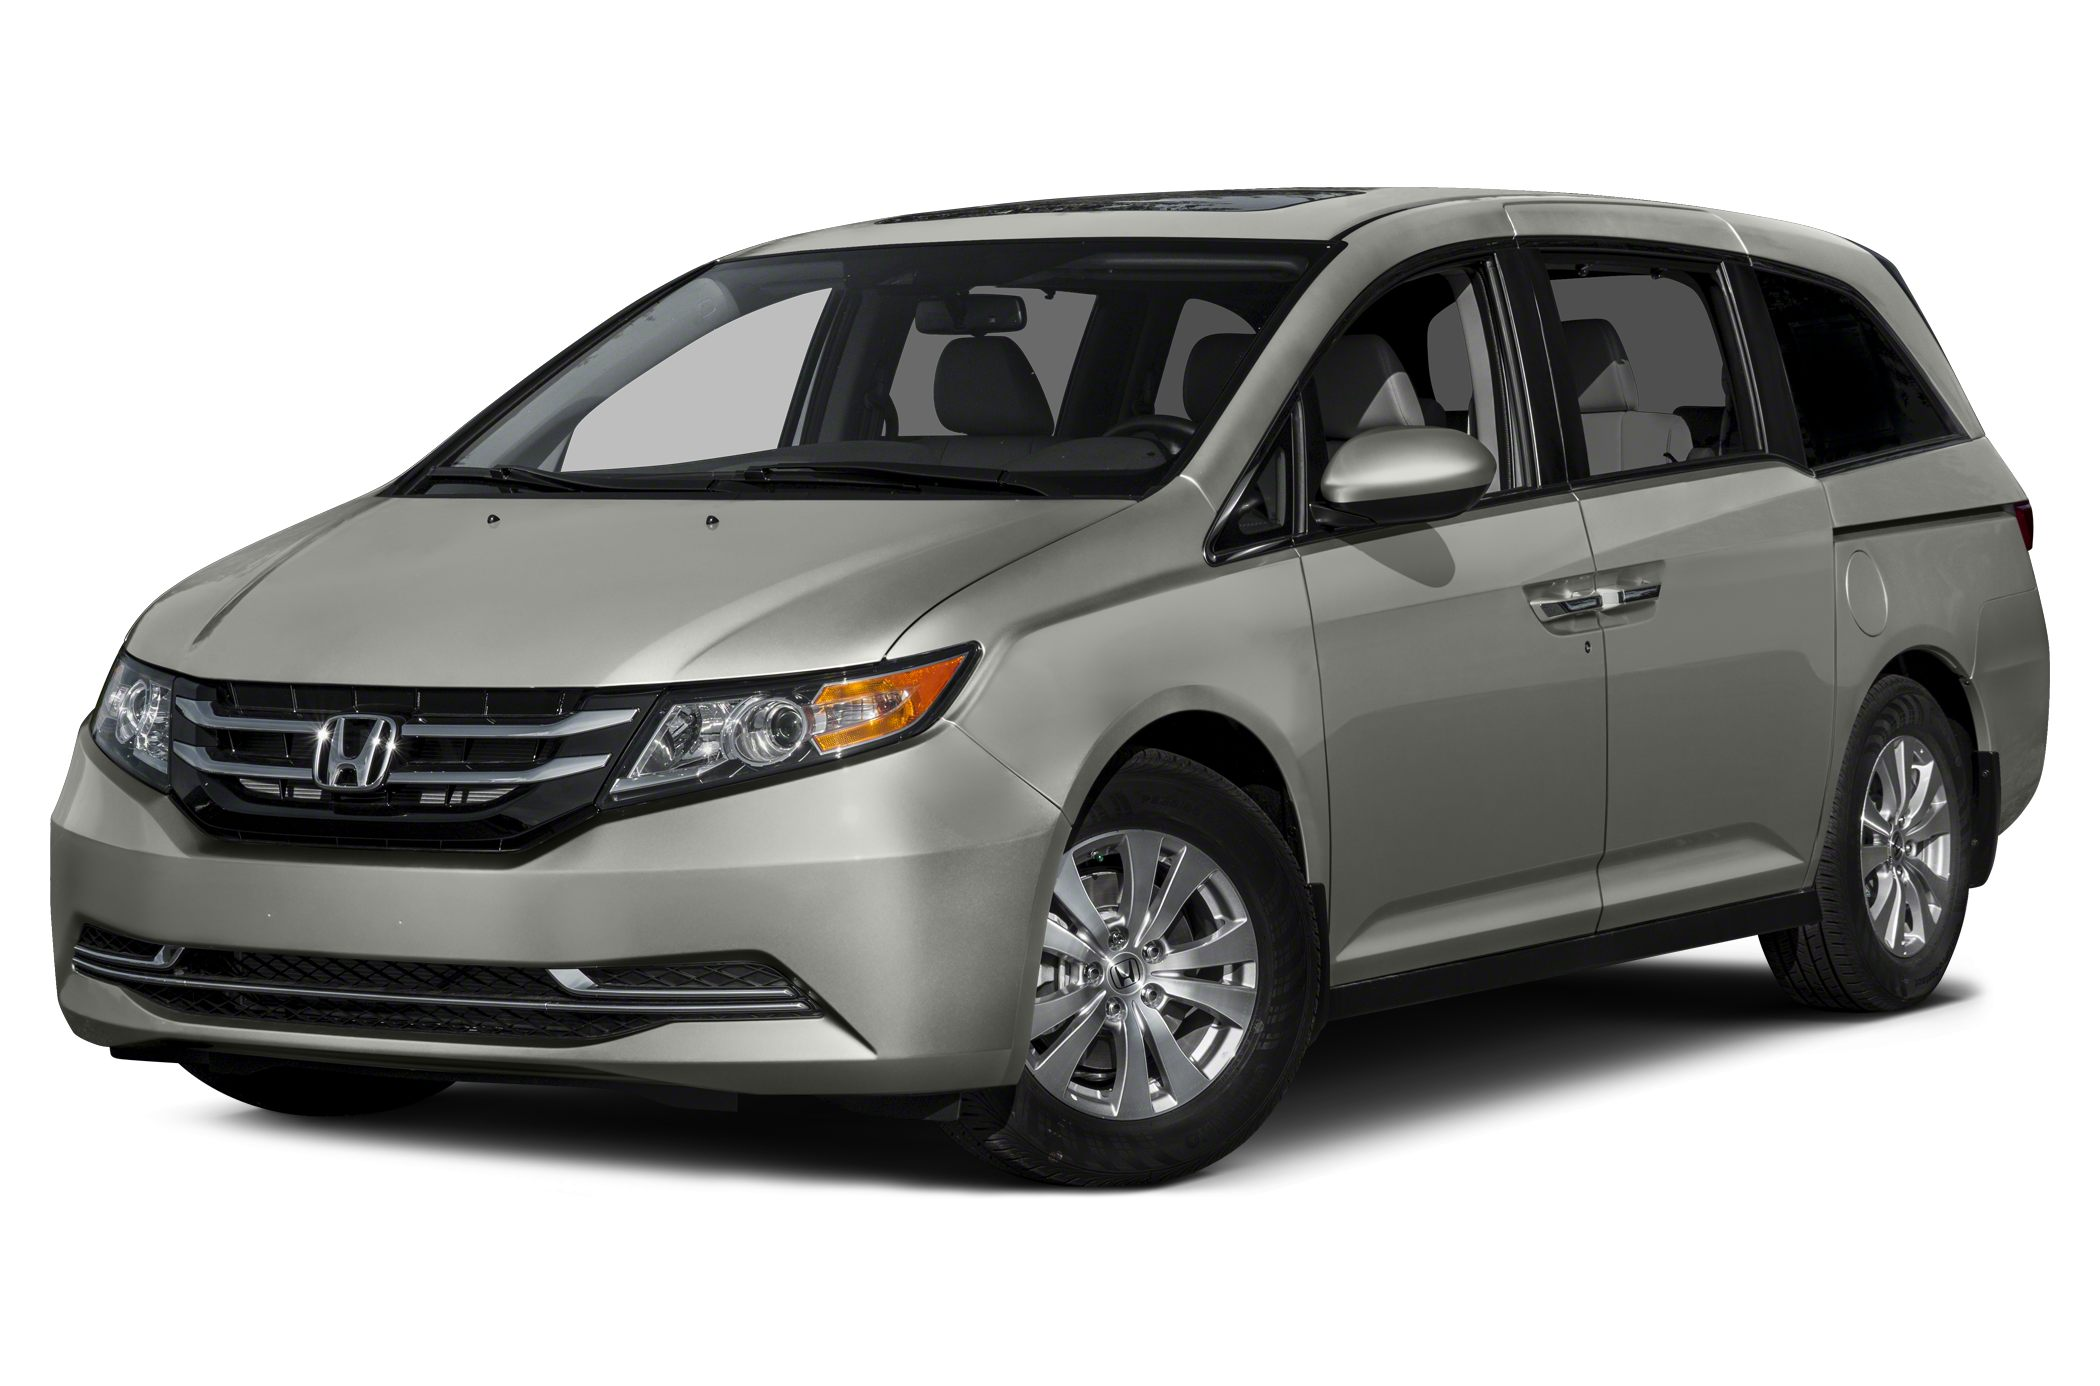 honda auto elite endowed price for the to go touring money odyssey review child is bus story